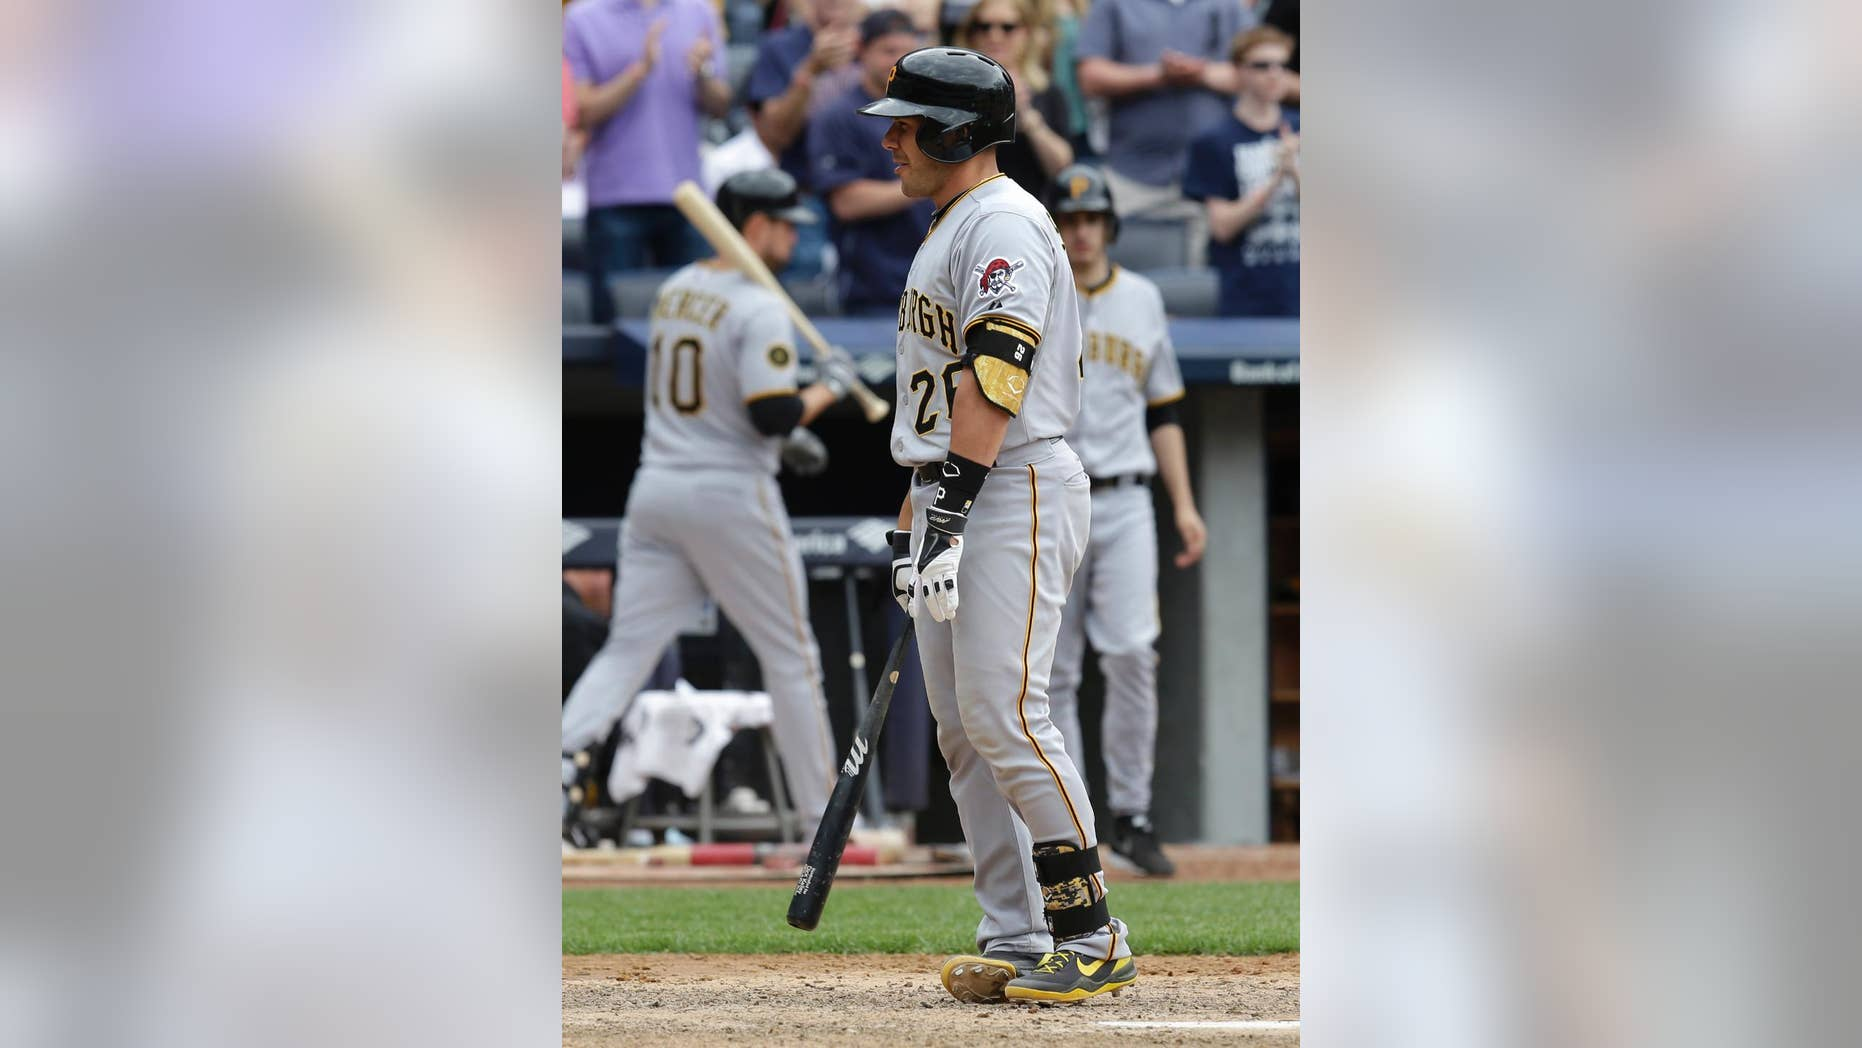 Pittsburgh Pirates' Tony Sanchez reacts after striking out to end the first game of a double-header against the New York Yankees at Yankee Stadium, Sunday, May 18, 2014 in New York. The Yankees defeated the Pirates 4-3. (AP Photo/Seth Wenig)